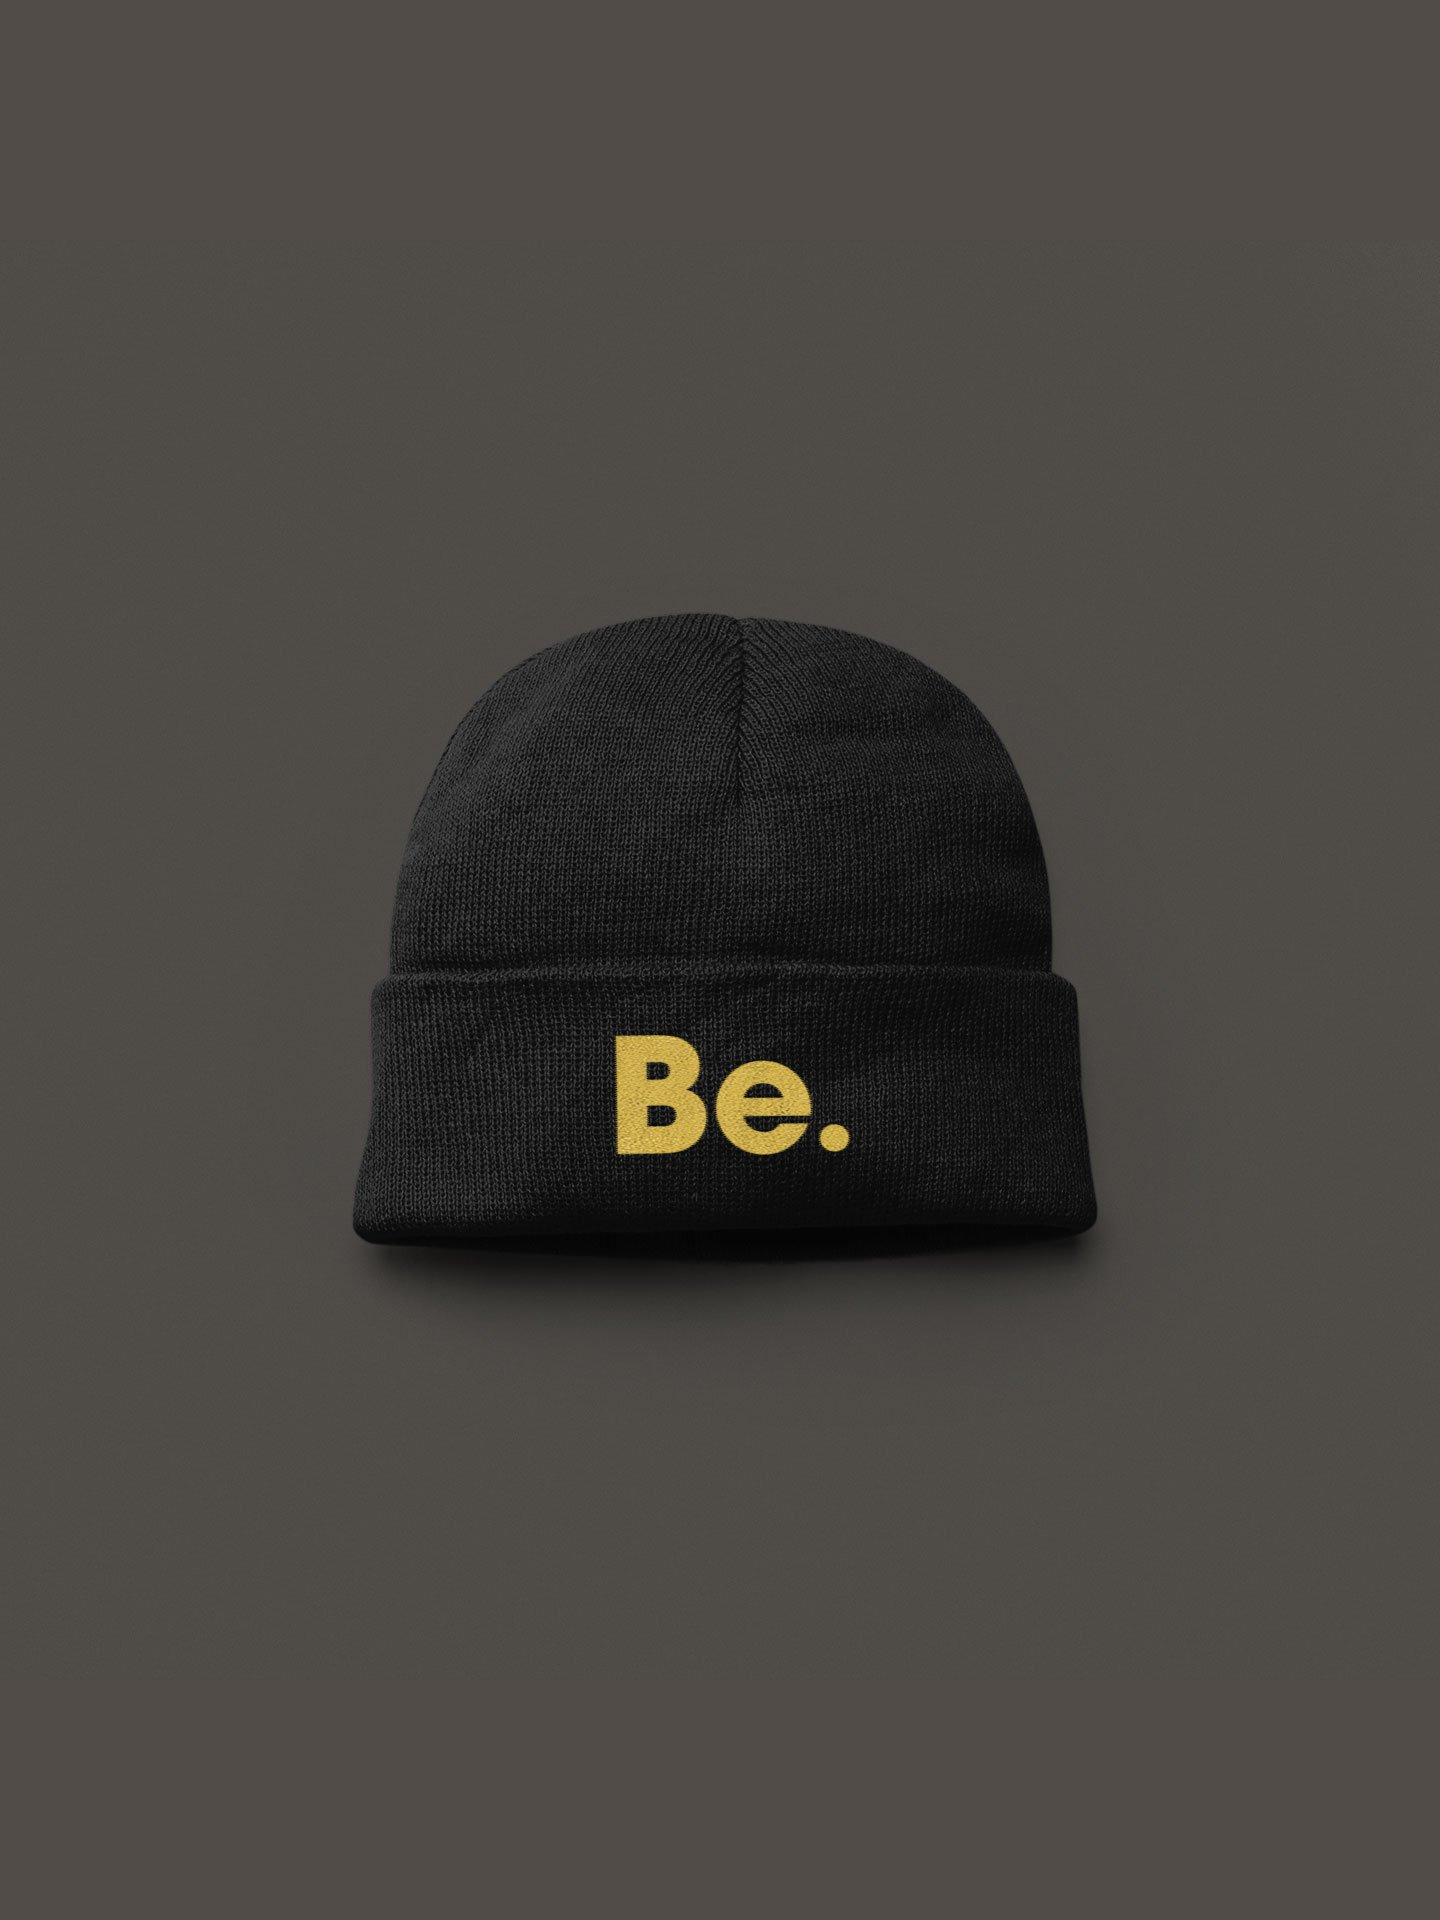 Be.House - Beanie